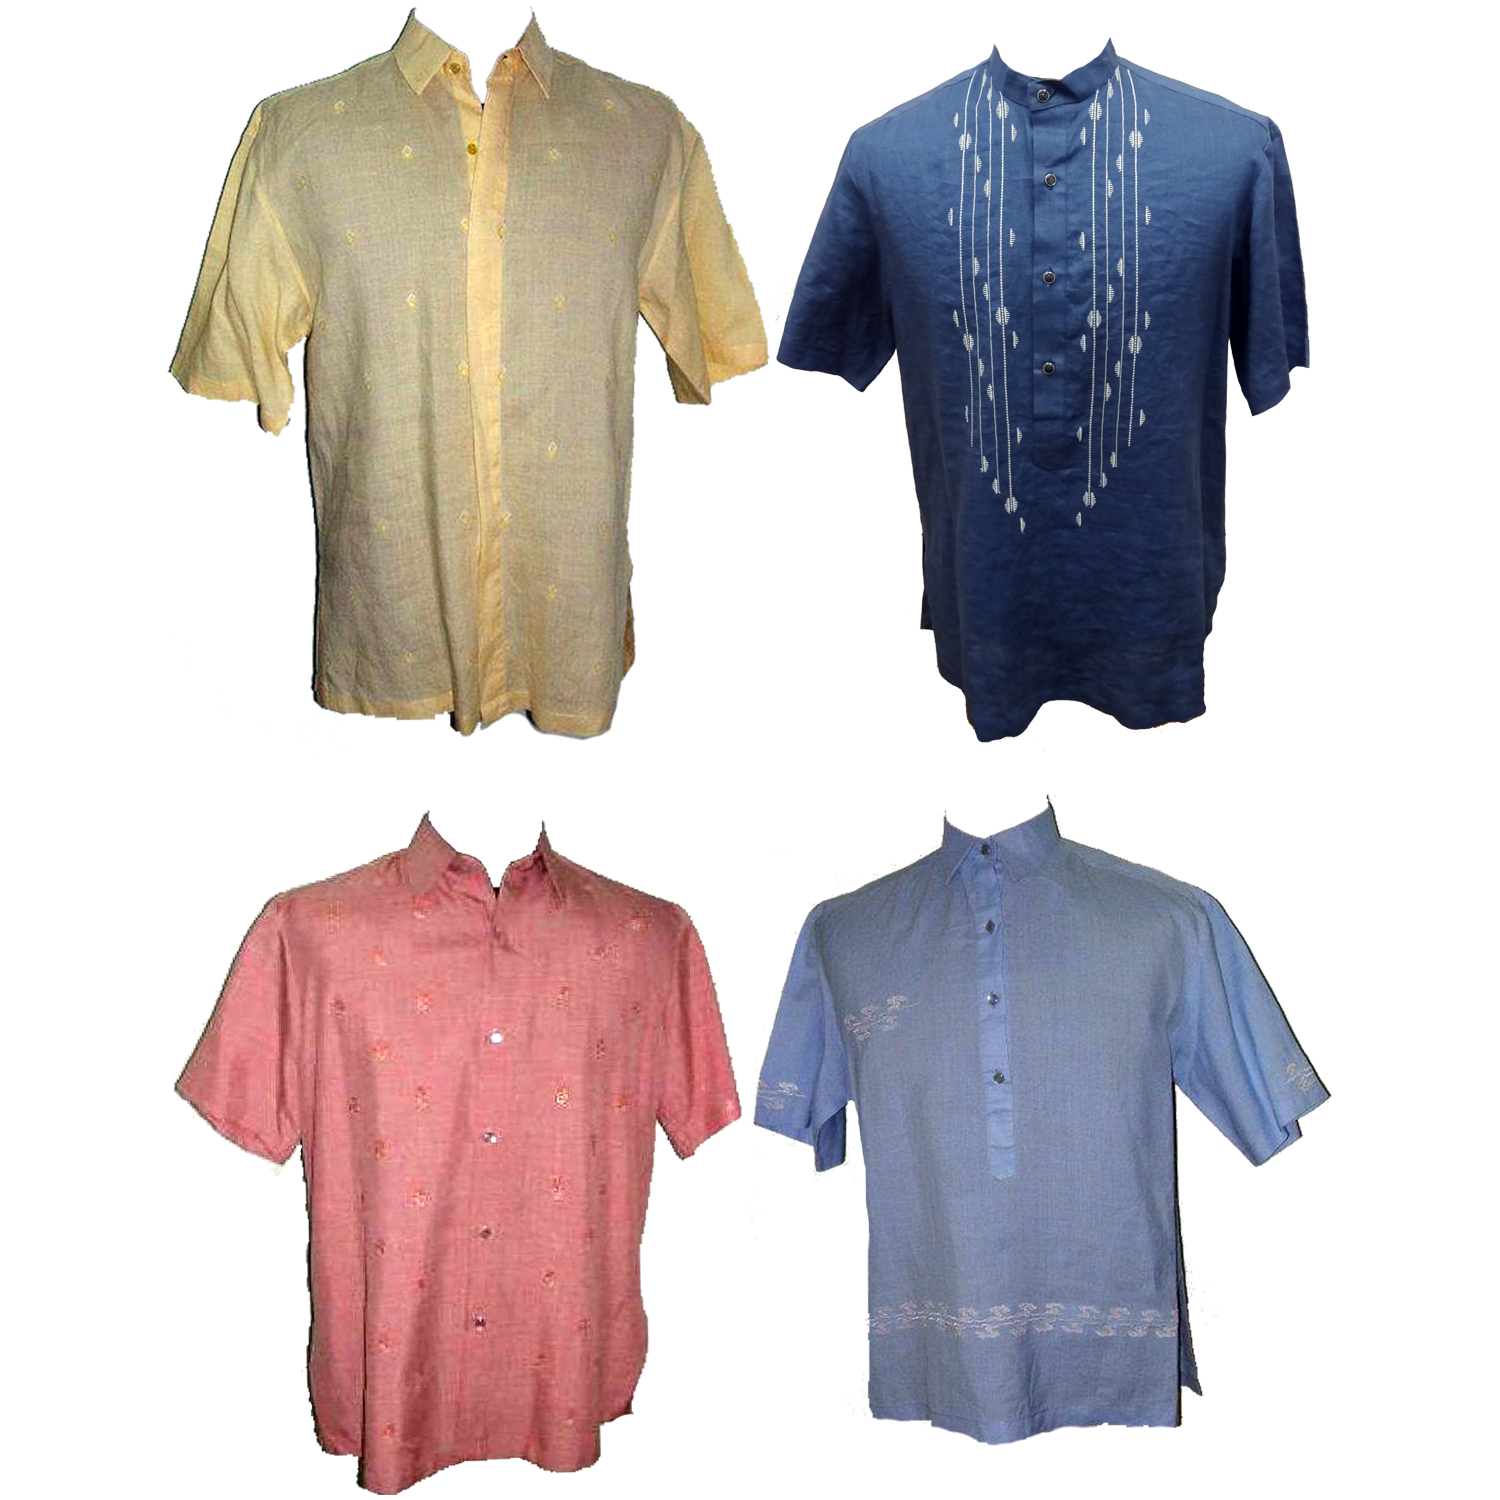 Assorted Polo Barongwant To Buy It Call Or Text Landline 8140159 Lgs Slim Fit Ladies Shirt Yellow Short Sleeve Kuning L